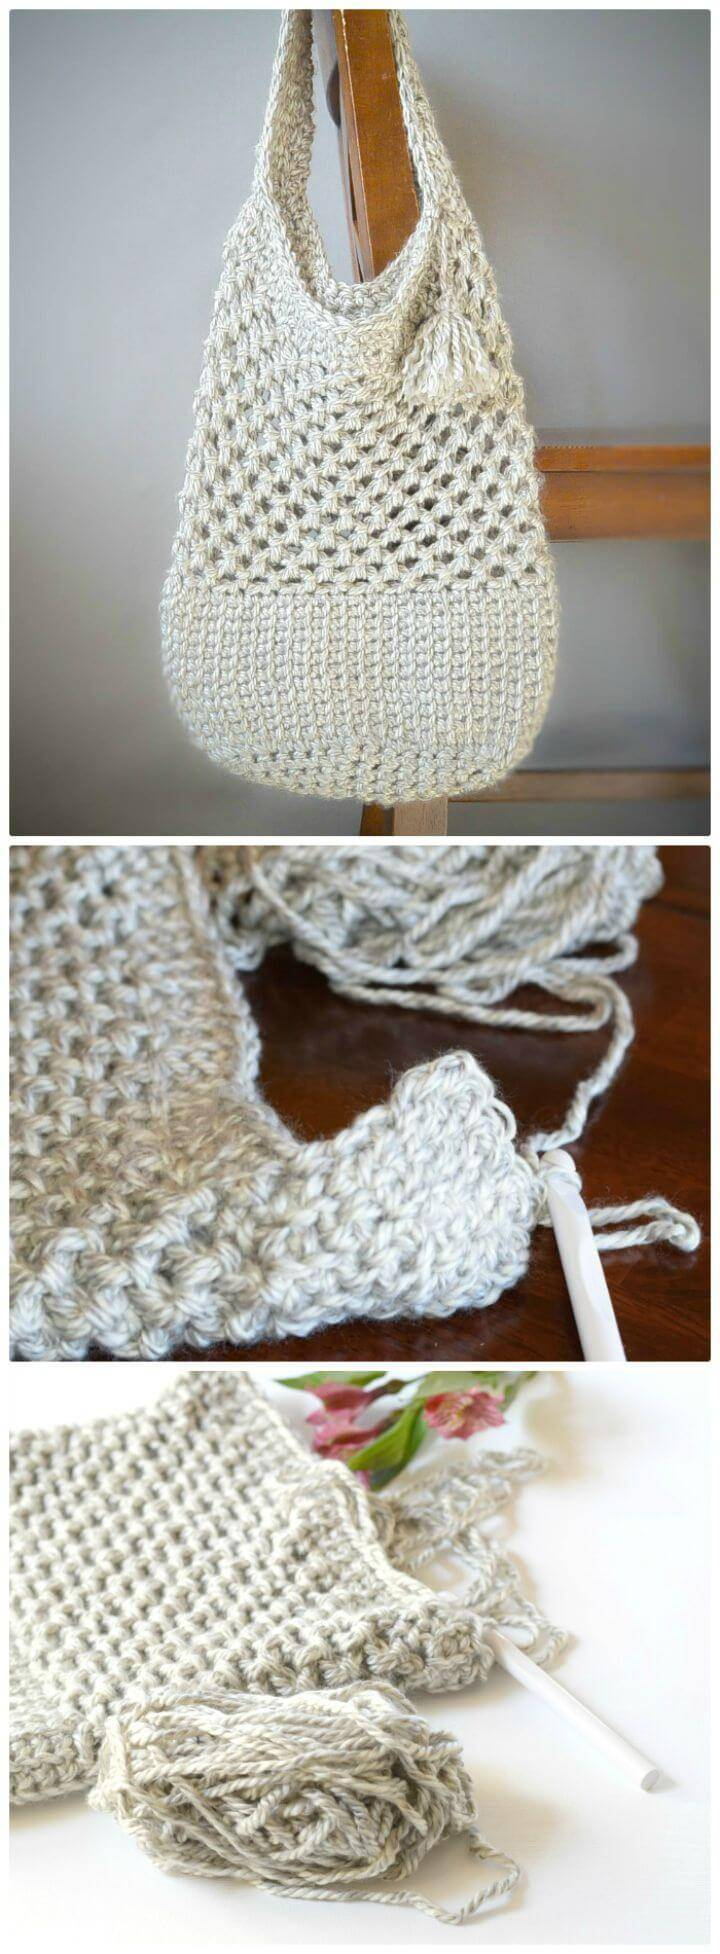 101 Free Crochet Patterns For Beginners That Are Super Easy - DIY ...